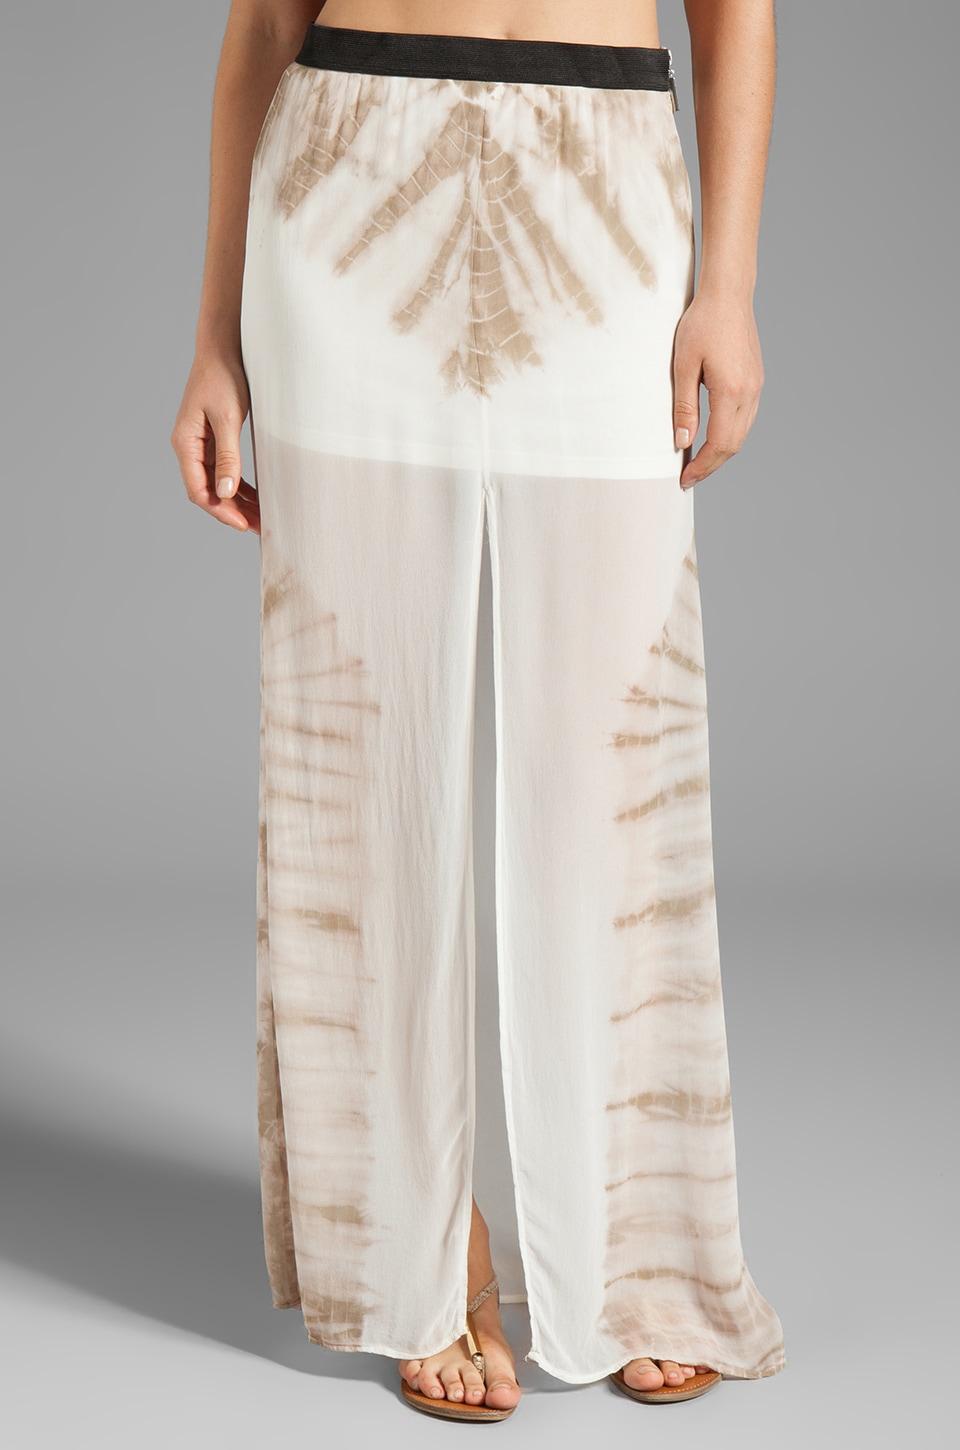 Young, Fabulous & Broke Oprah Carnivale Wash Skirt in Sand